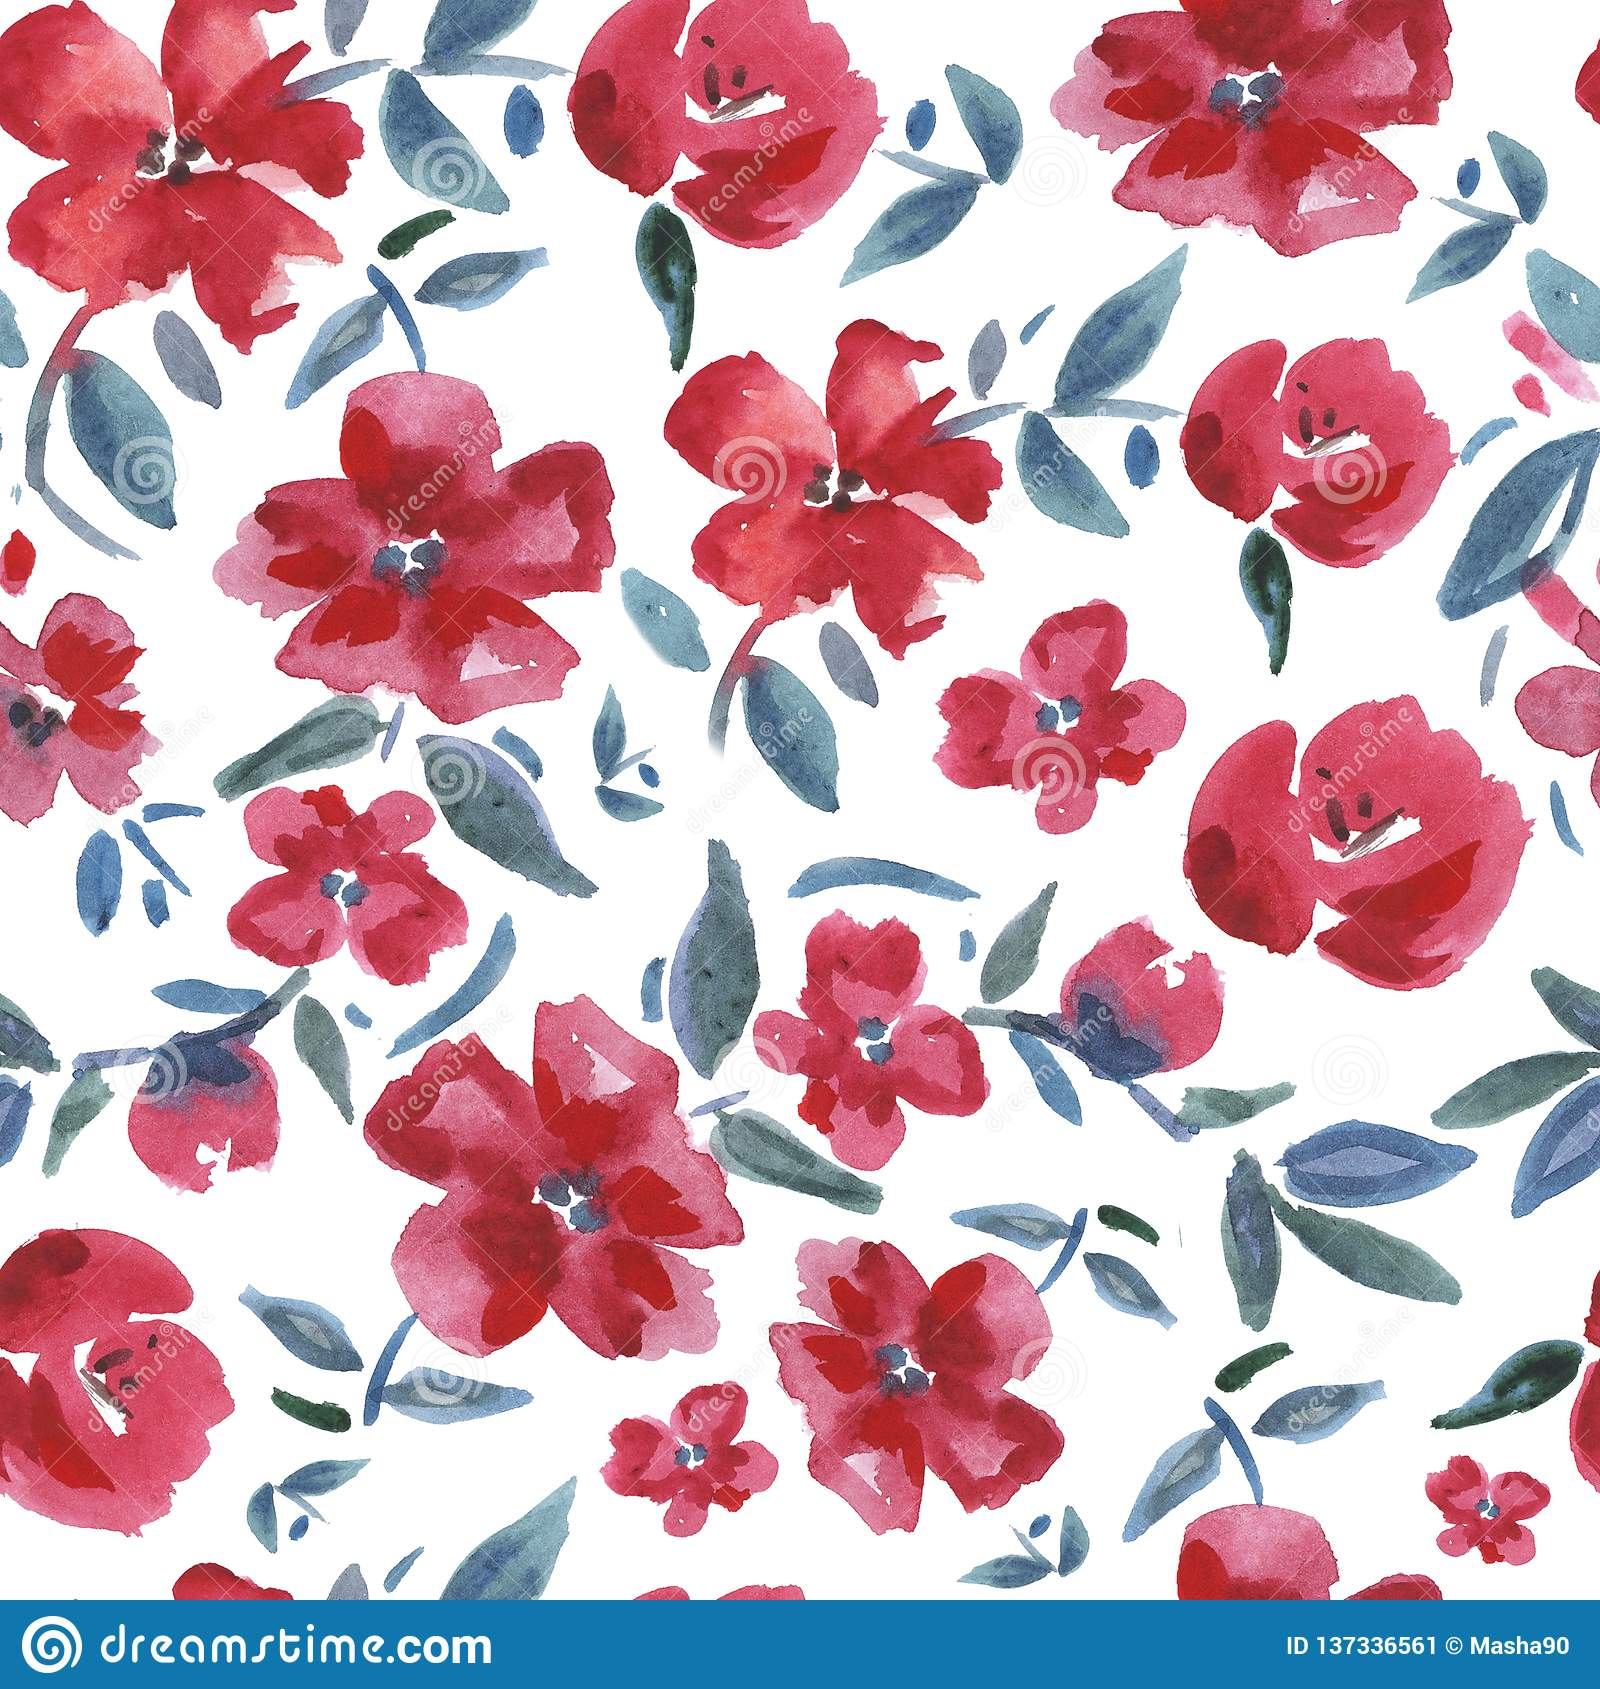 Red flowers. Watercolor seamless pattern.